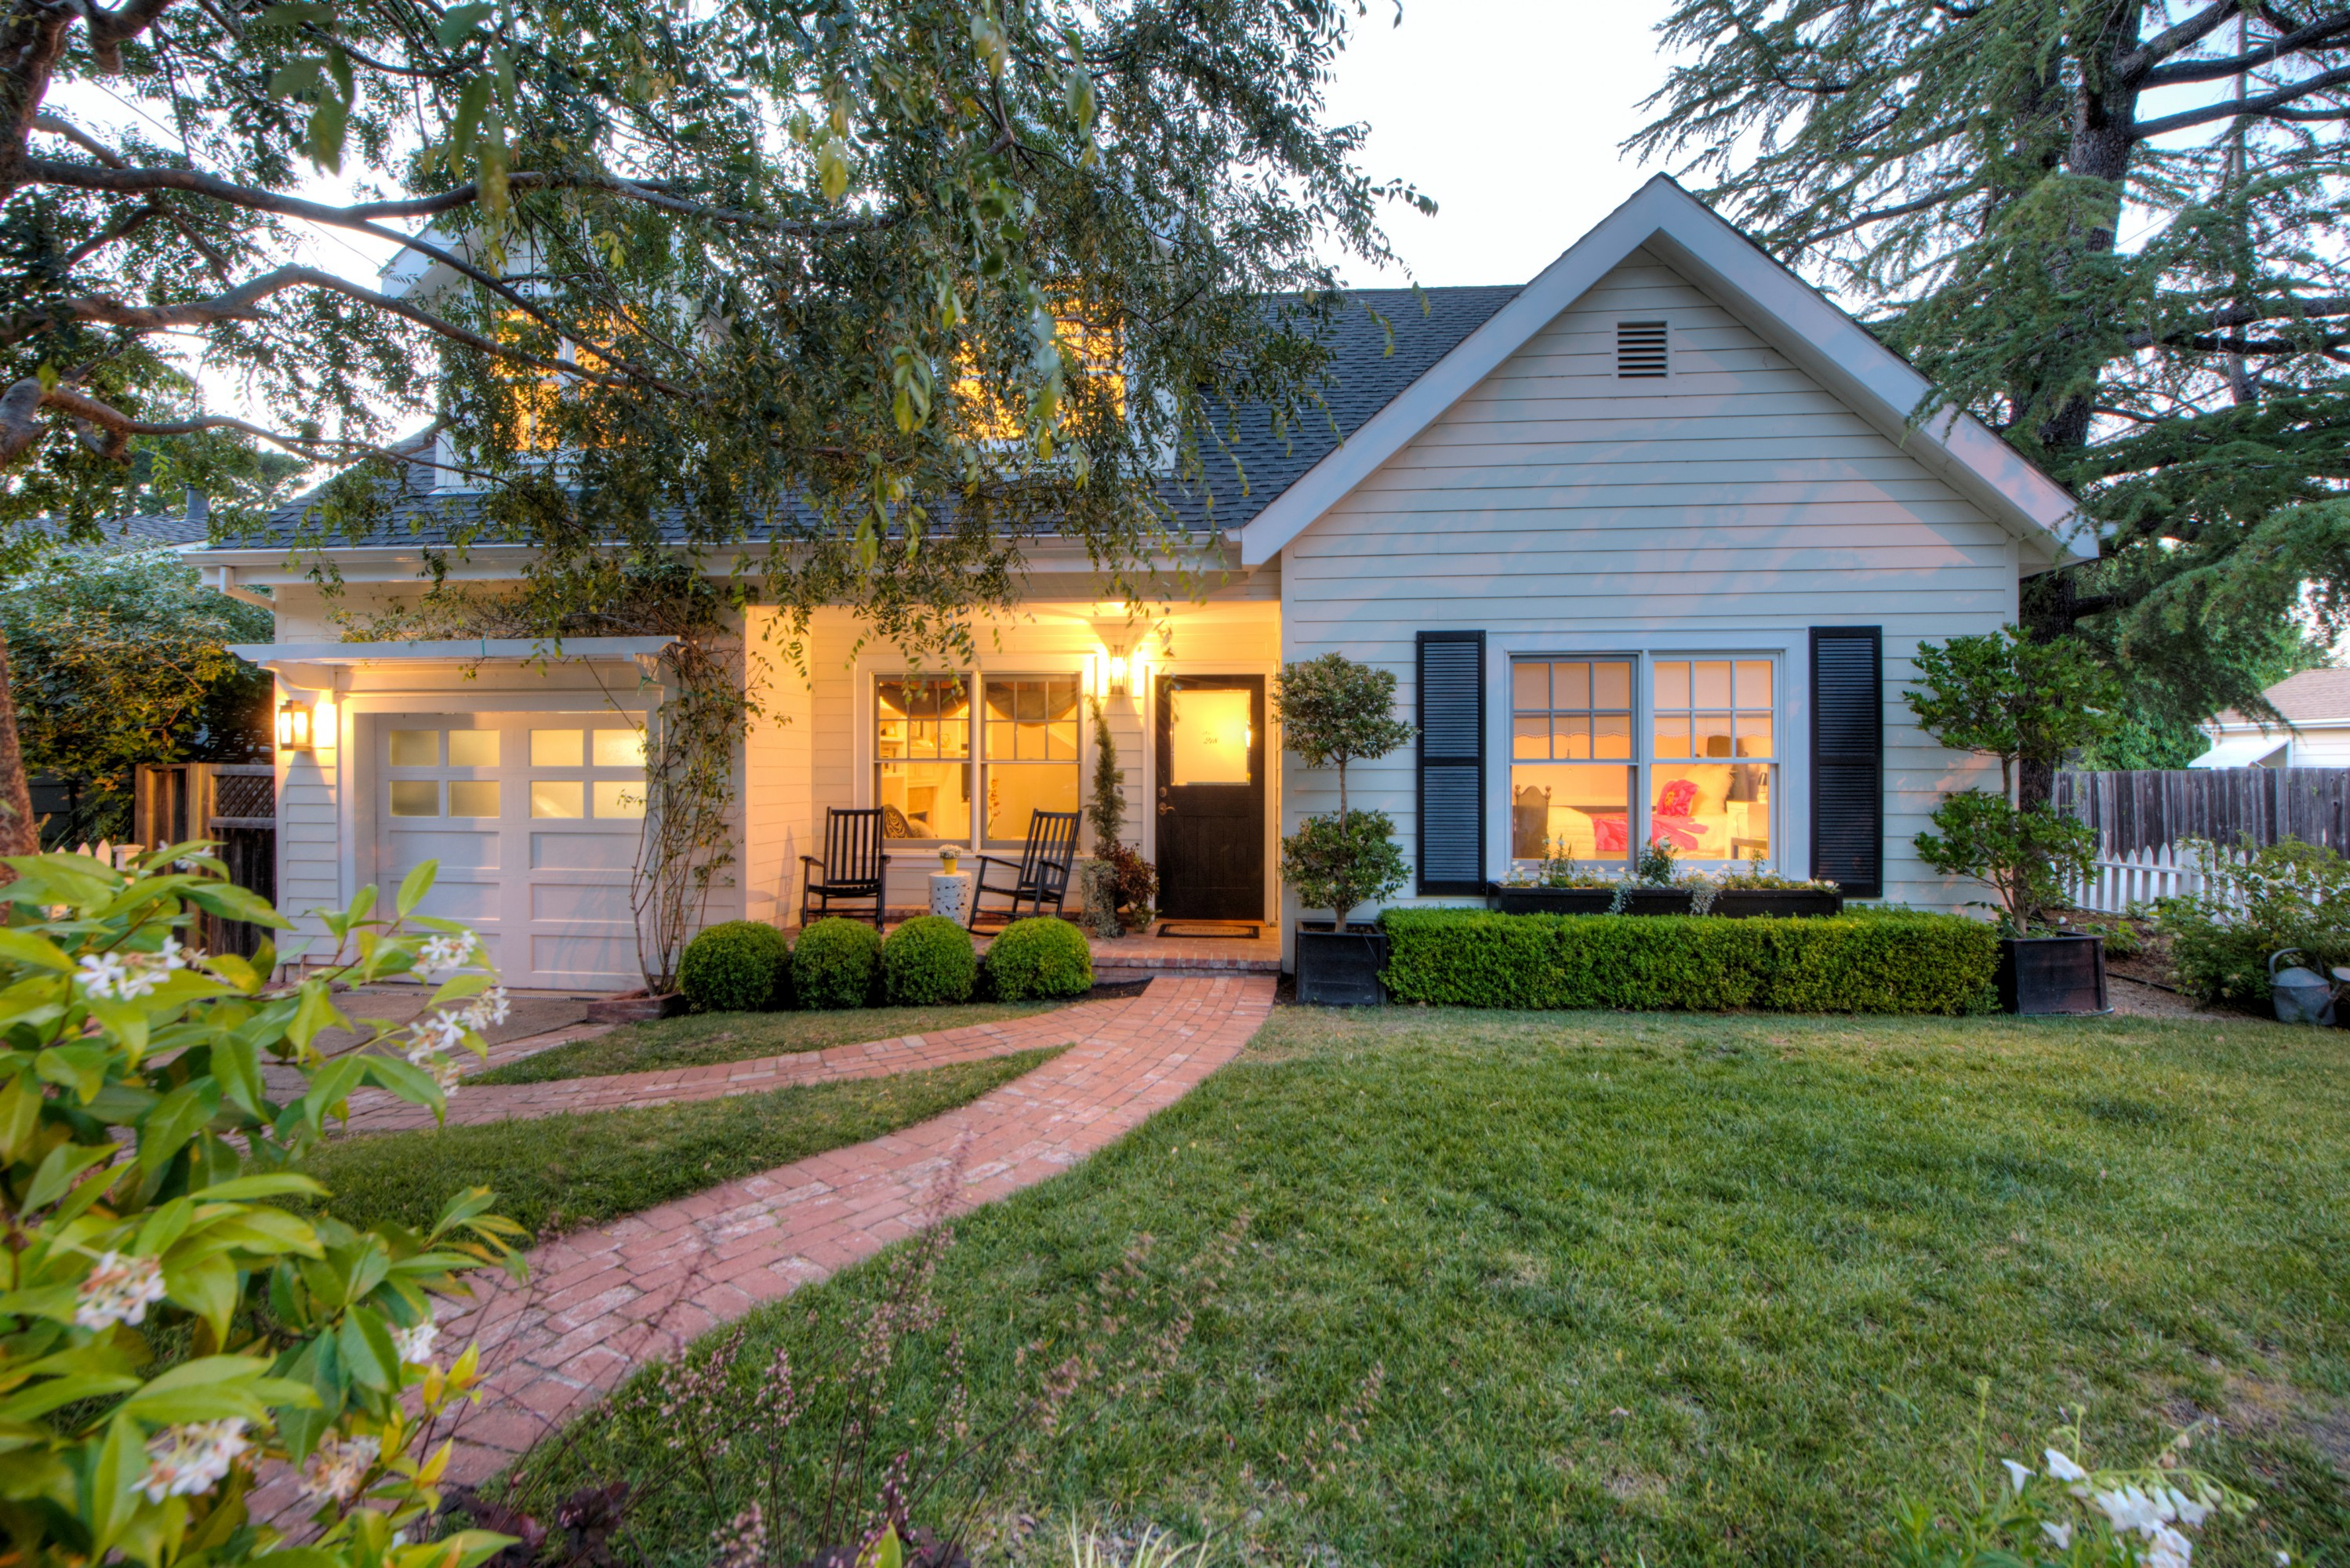 Single Family Home for Sale at Jewel in the Heart of Larkspur 218 William Avenue Larkspur, California, 94939 United States